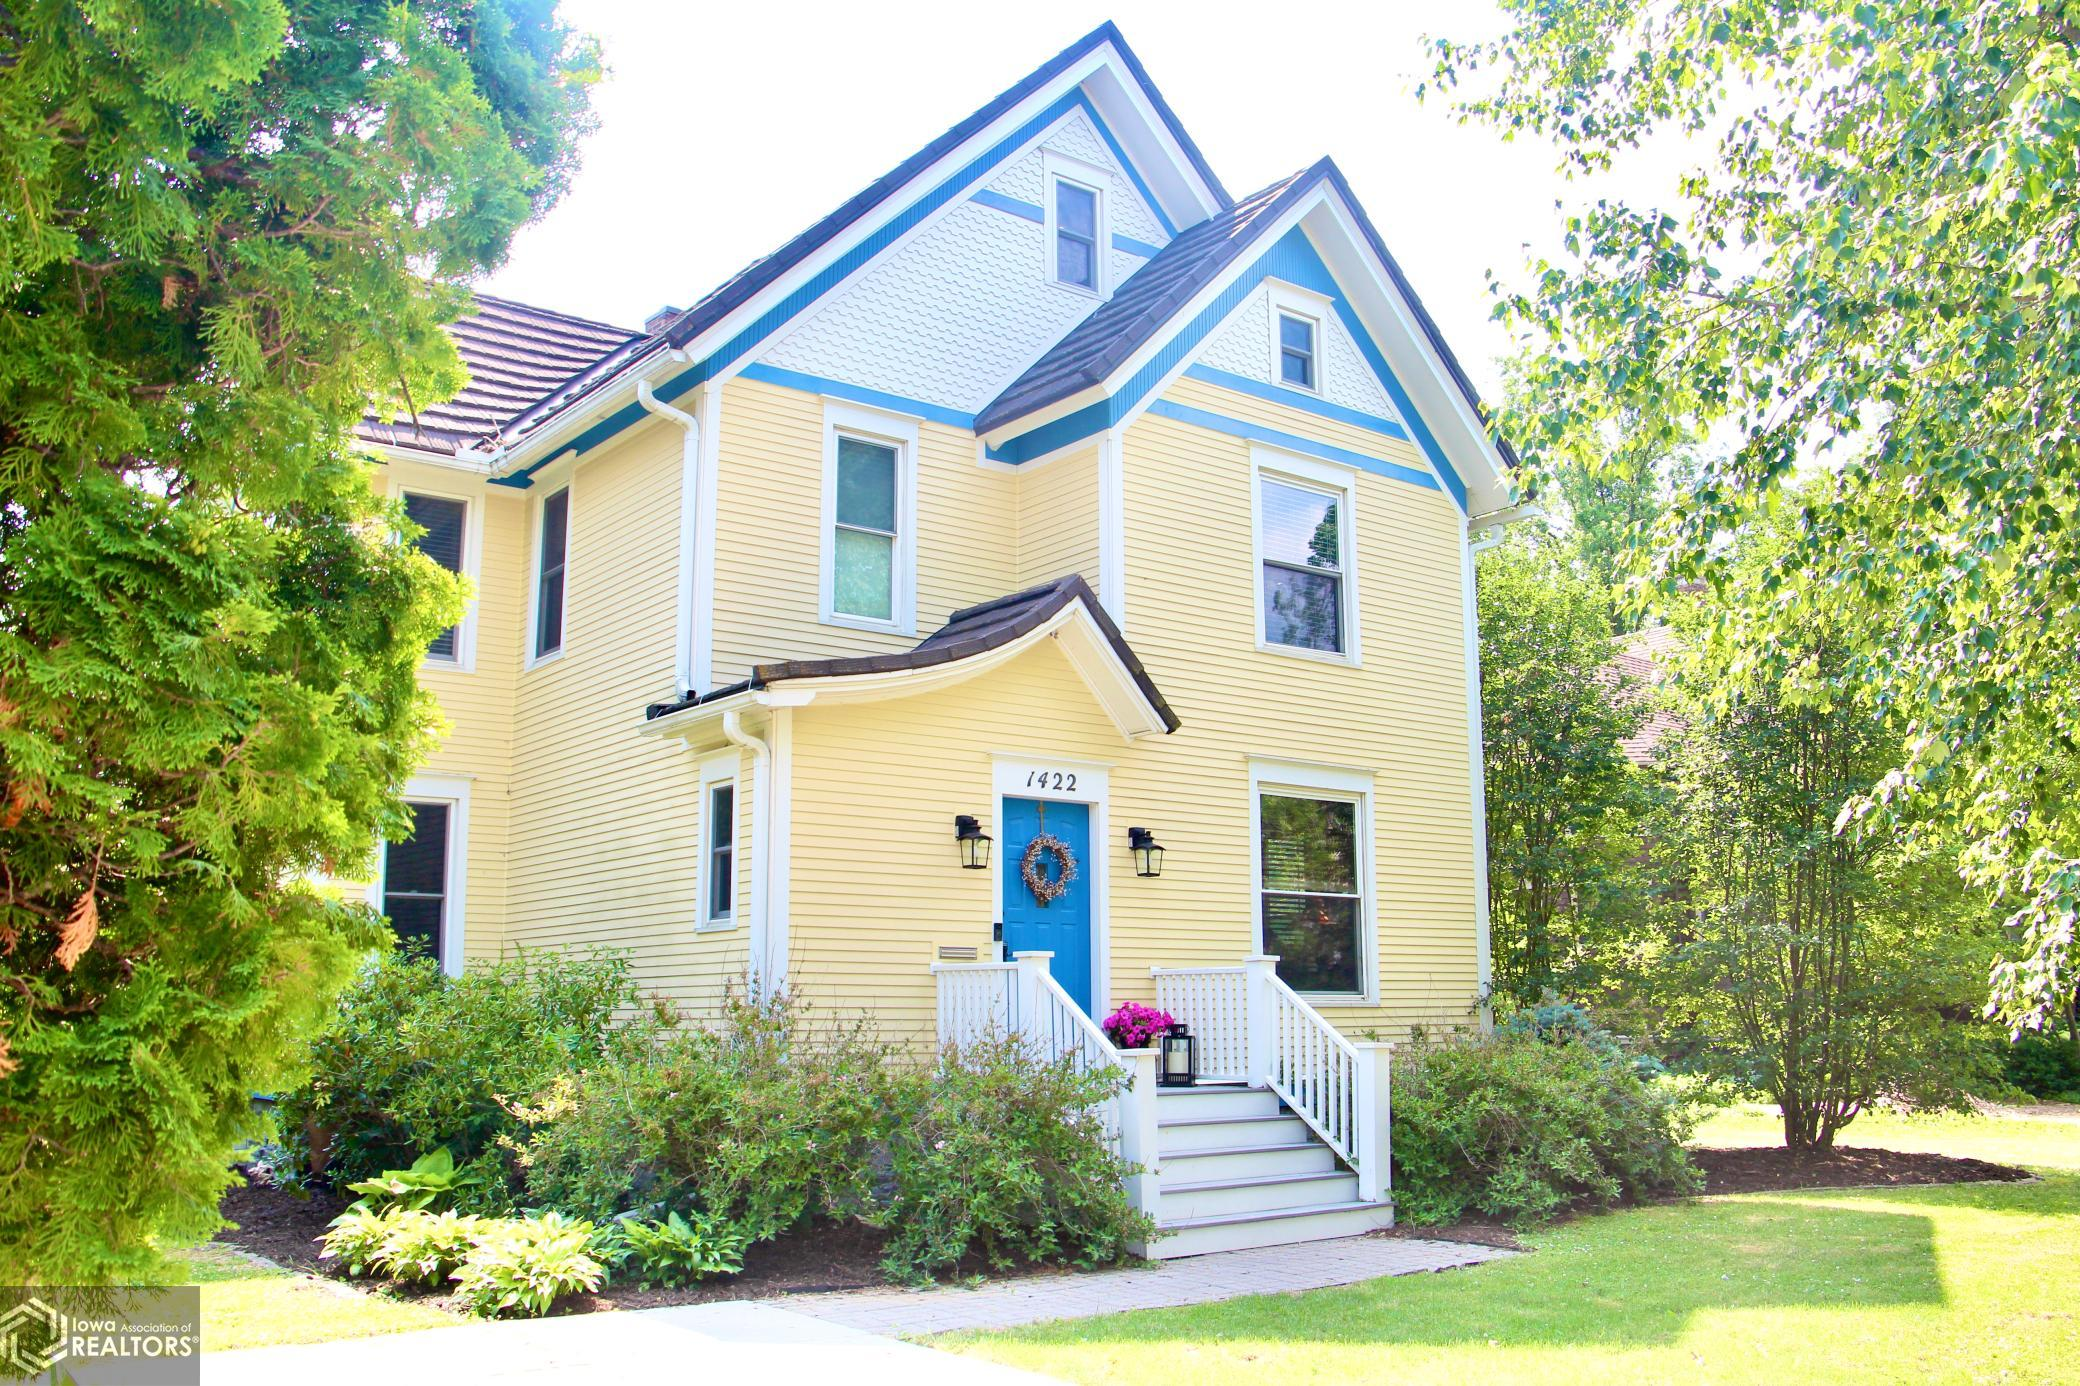 1422 Broad, Grinnell, Iowa 50112-1421, 5 Bedrooms Bedrooms, ,1 BathroomBathrooms,Single Family,For Sale,Broad,6010540